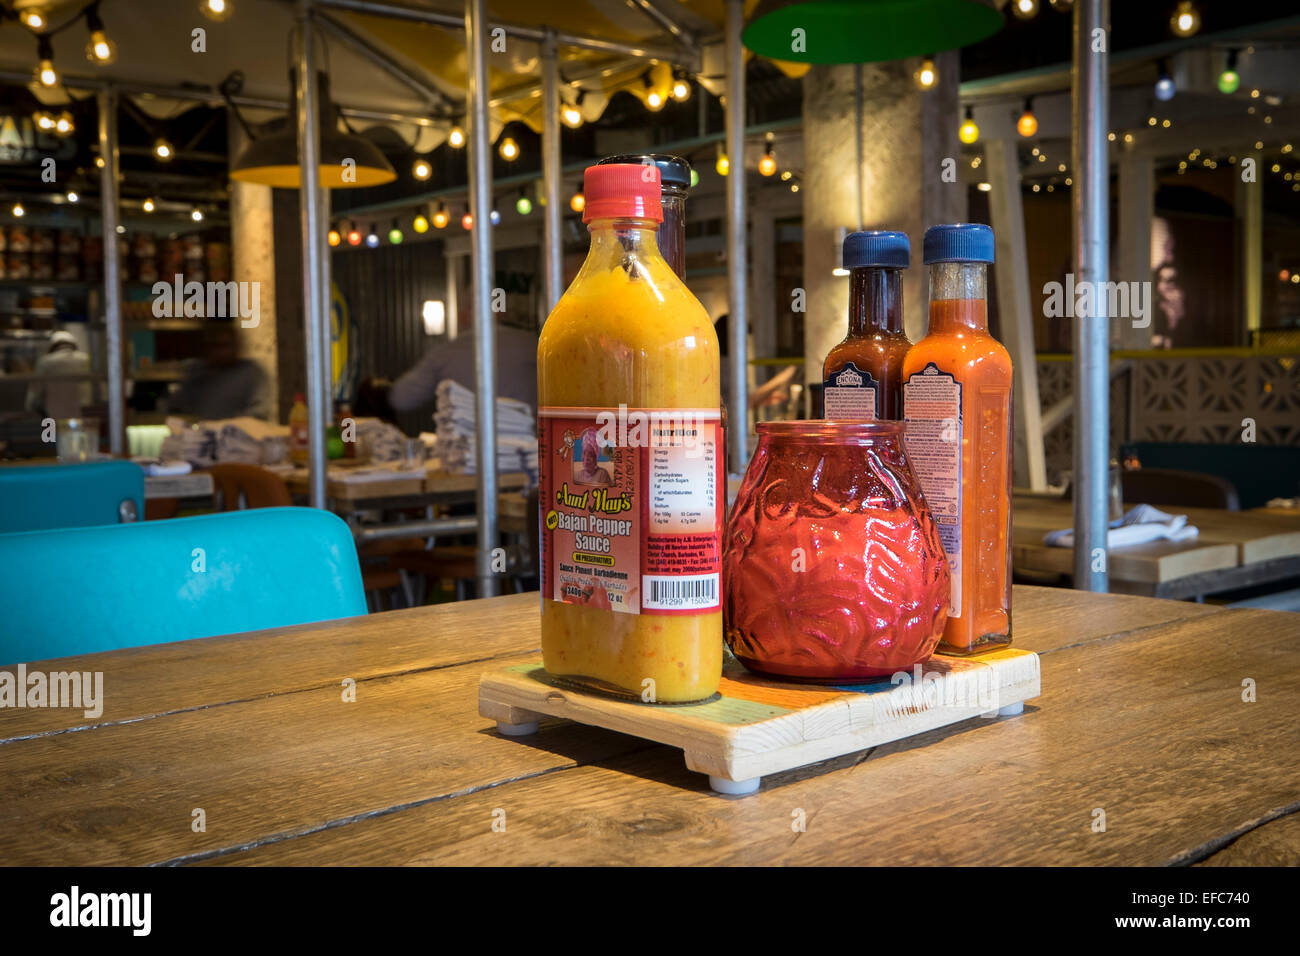 Turtle Bay Restaurant Table - Stock Image